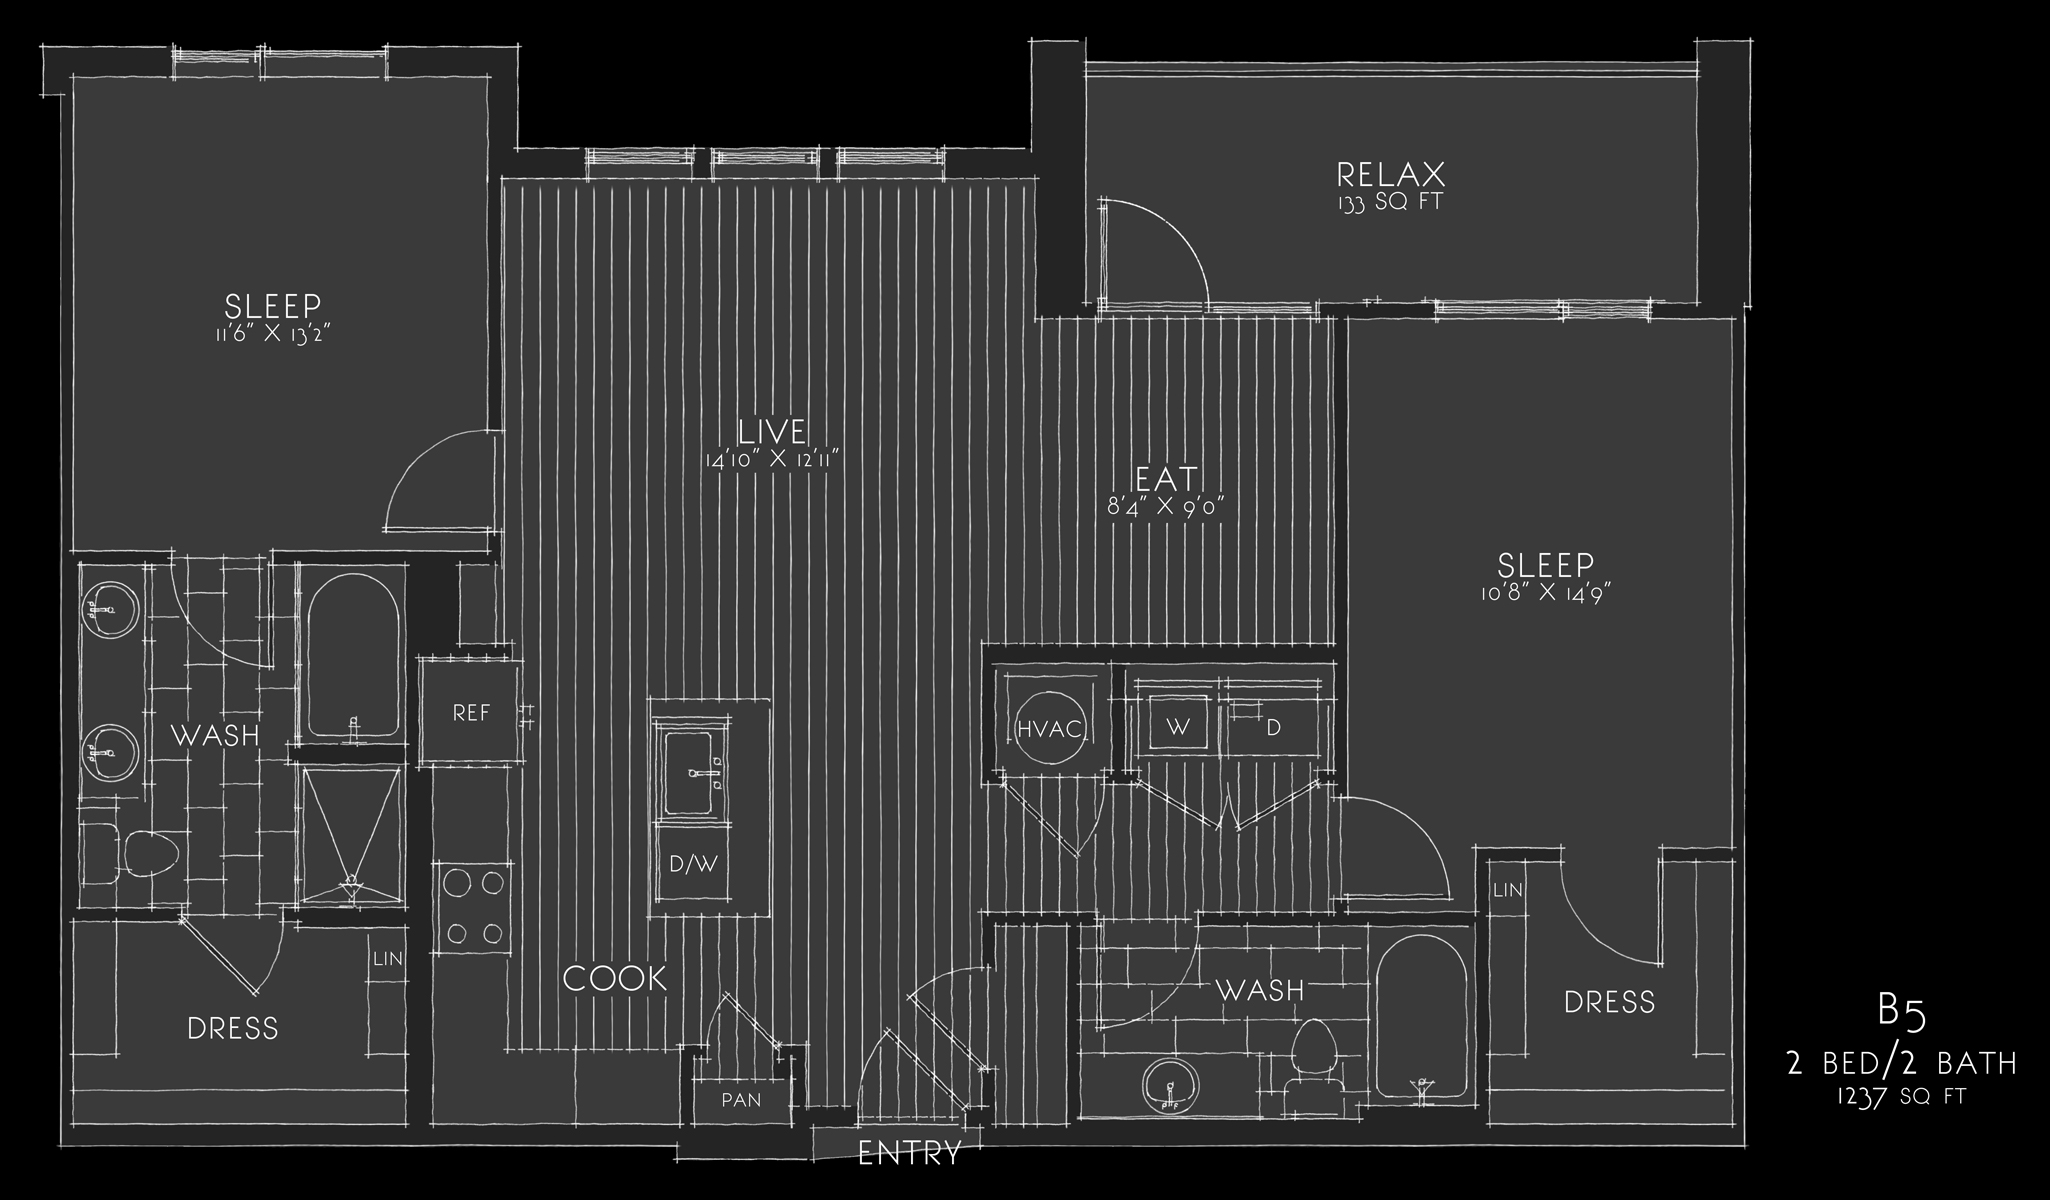 sketched reverse floorplan